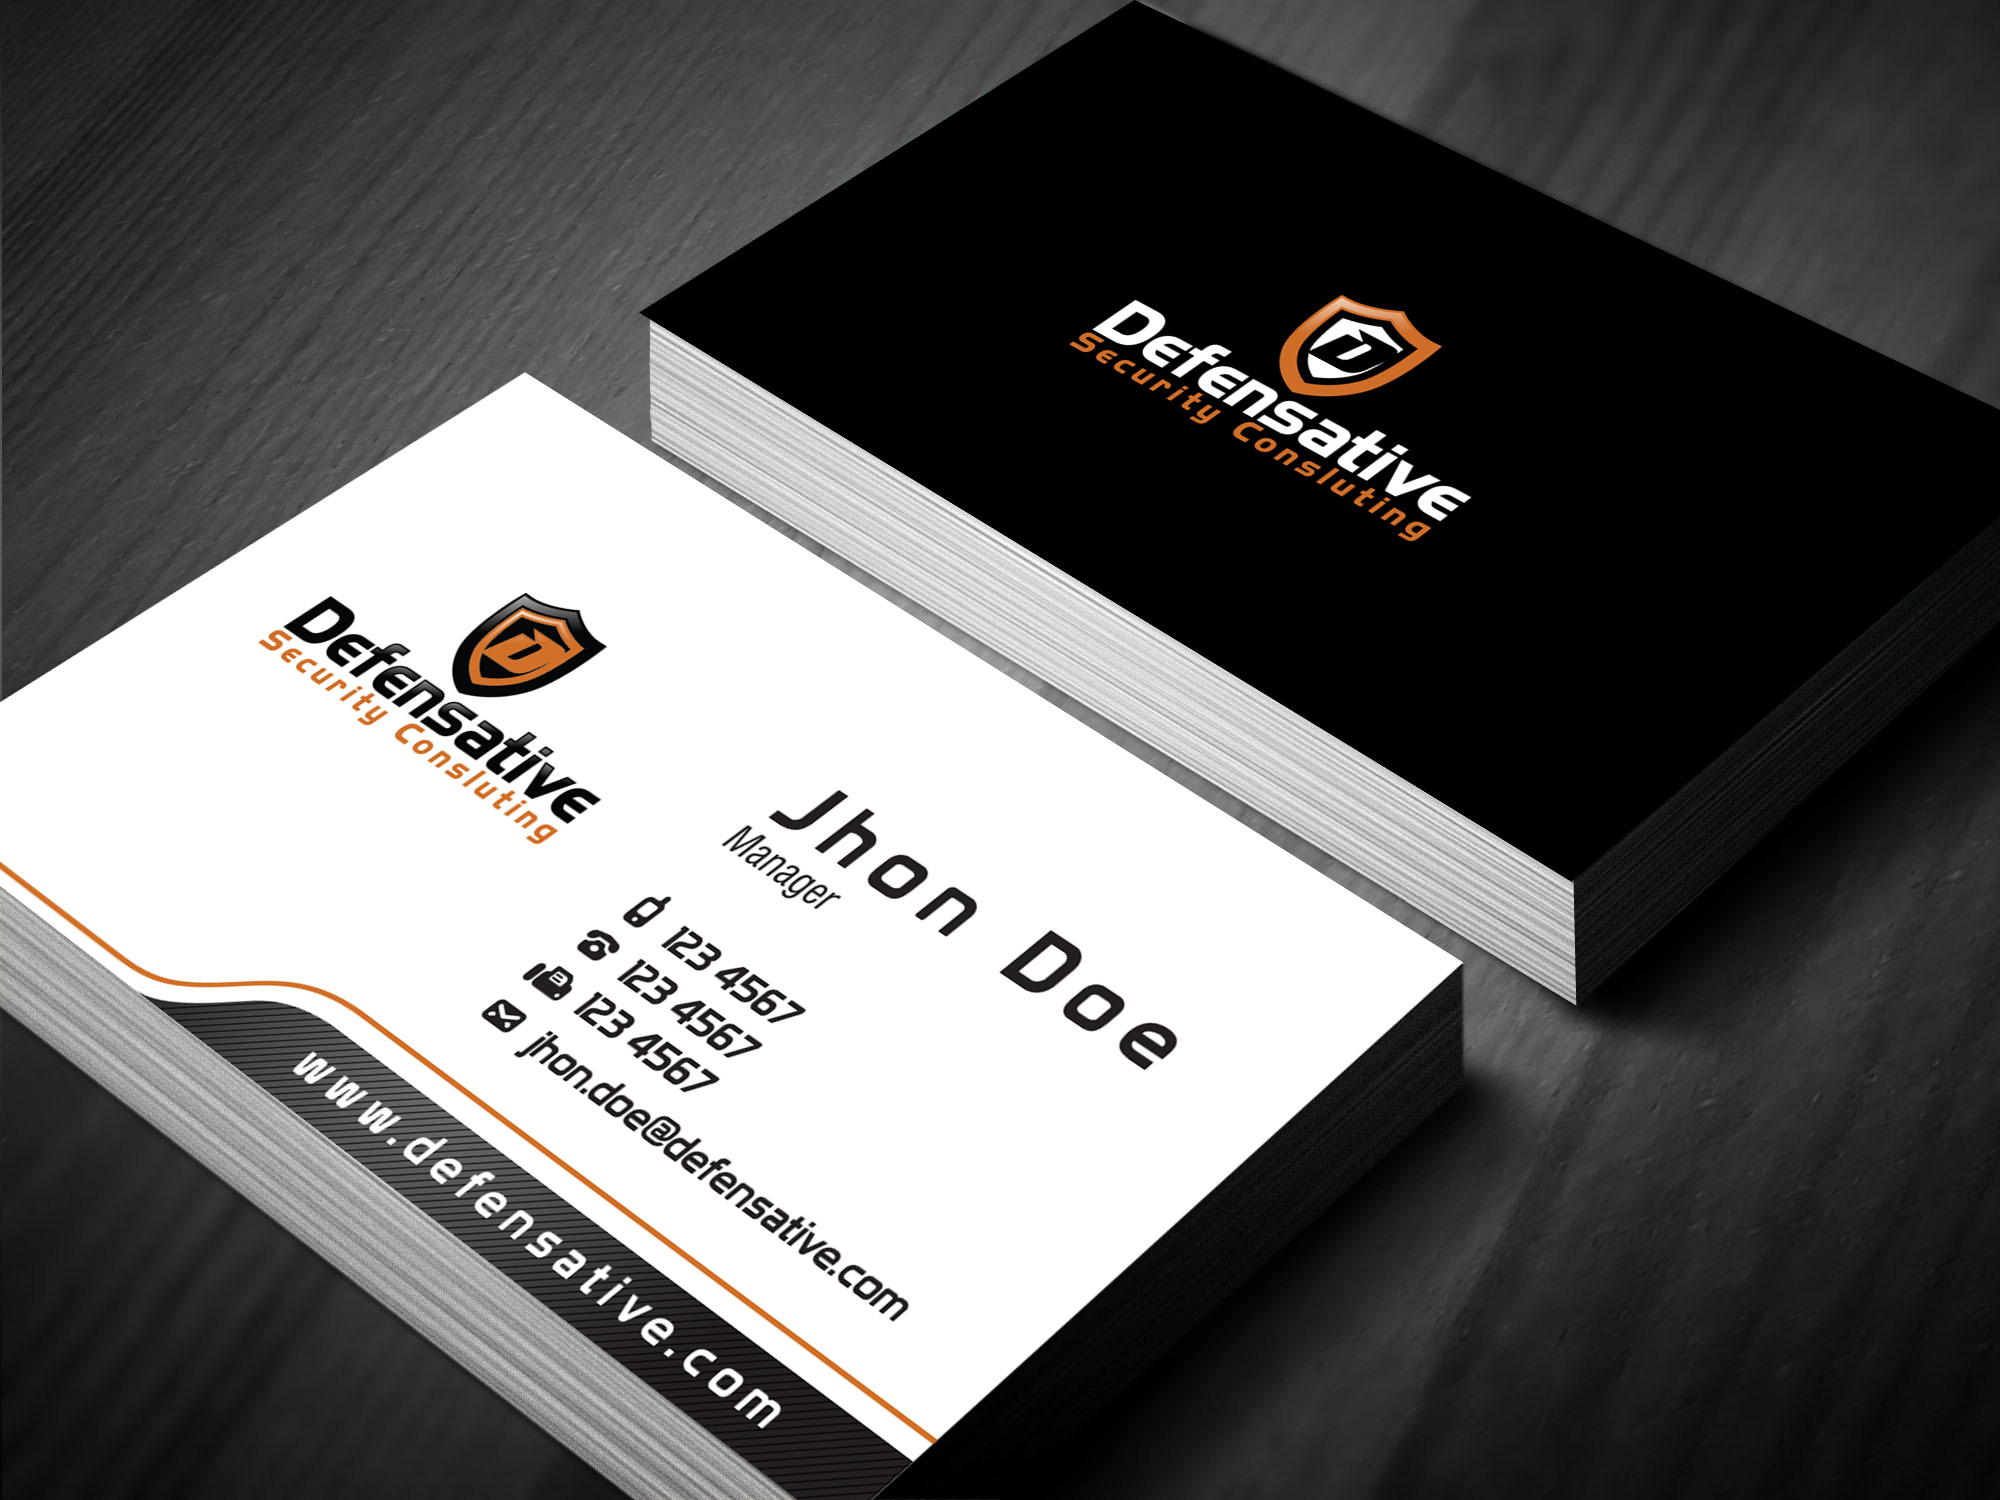 Custom Design by lagalag - Entry No. 15 in the Custom Design Contest Custom Design Business Cards+Logo+Stationary for Defensative.